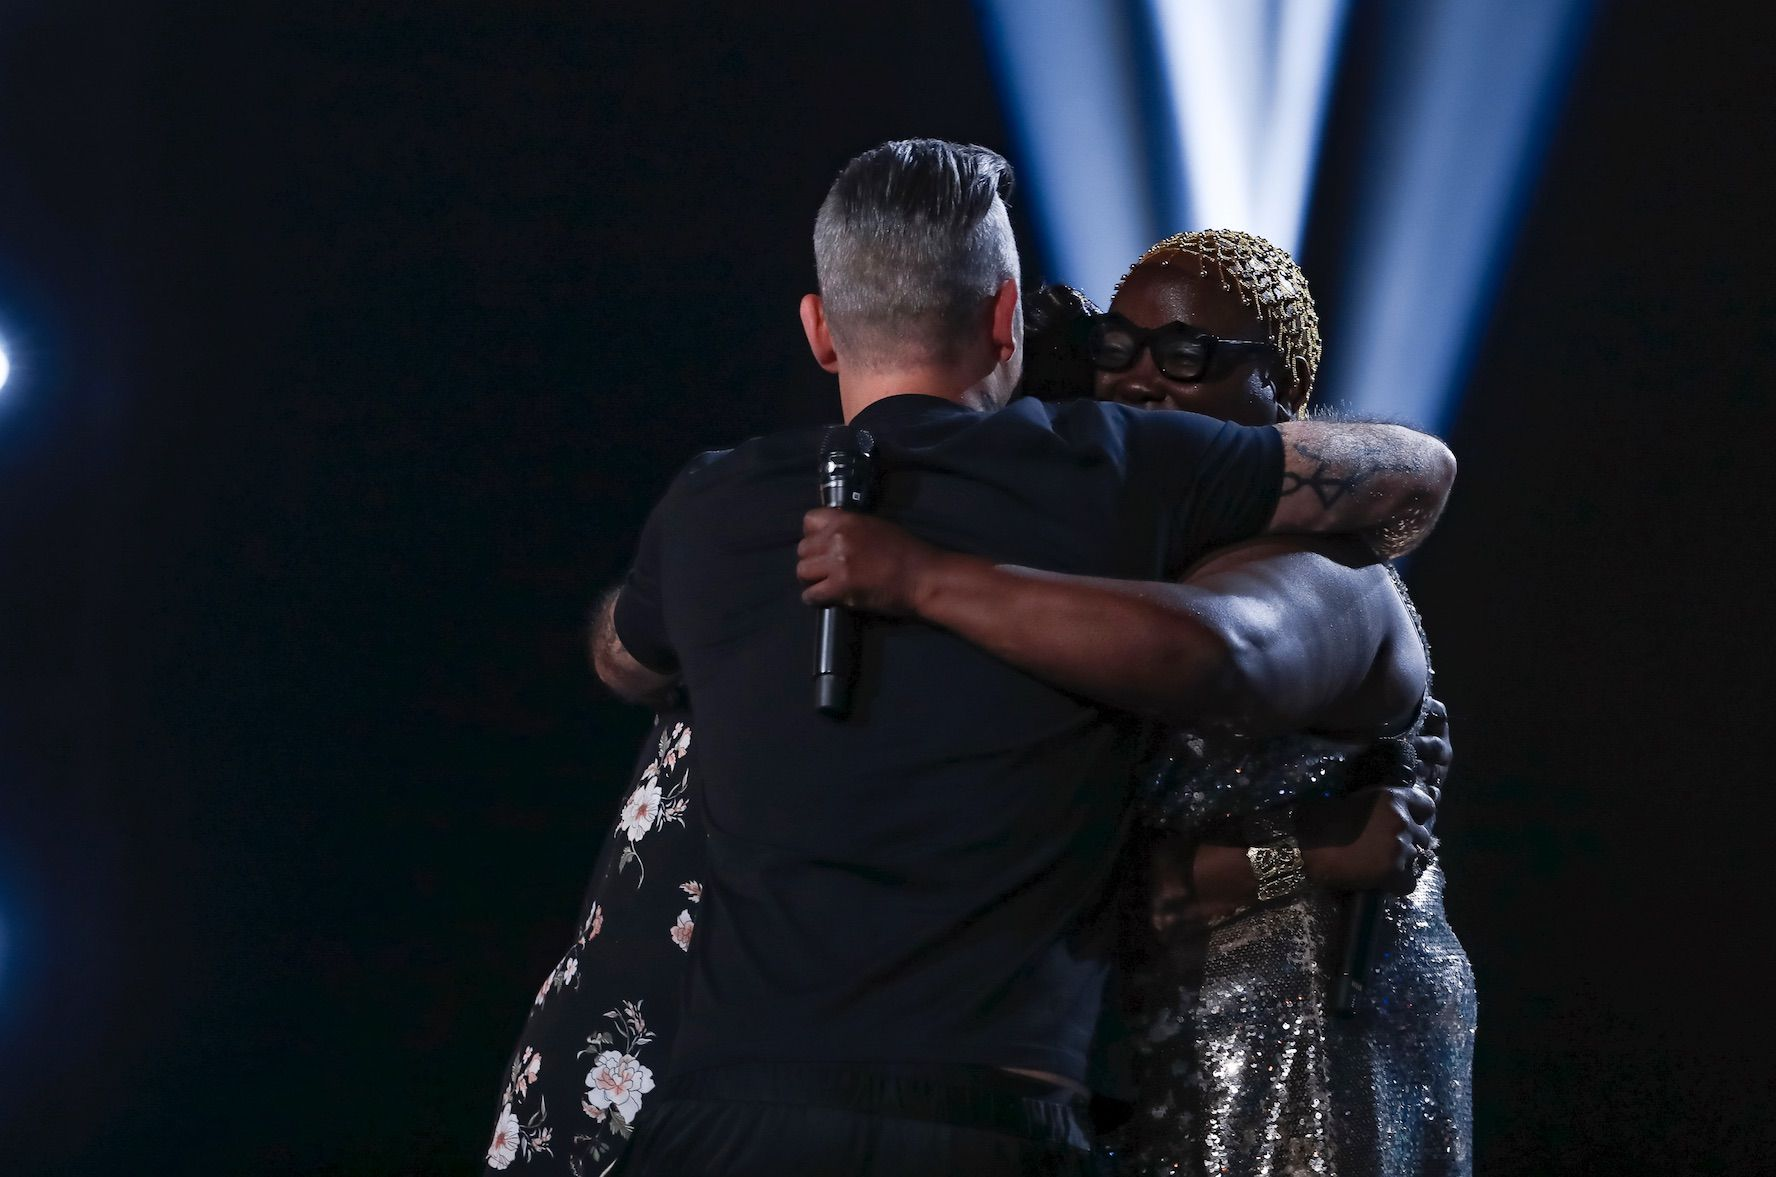 X Factor judge Robbie Williams hijacks wife Ayda Field's singers to form his own group